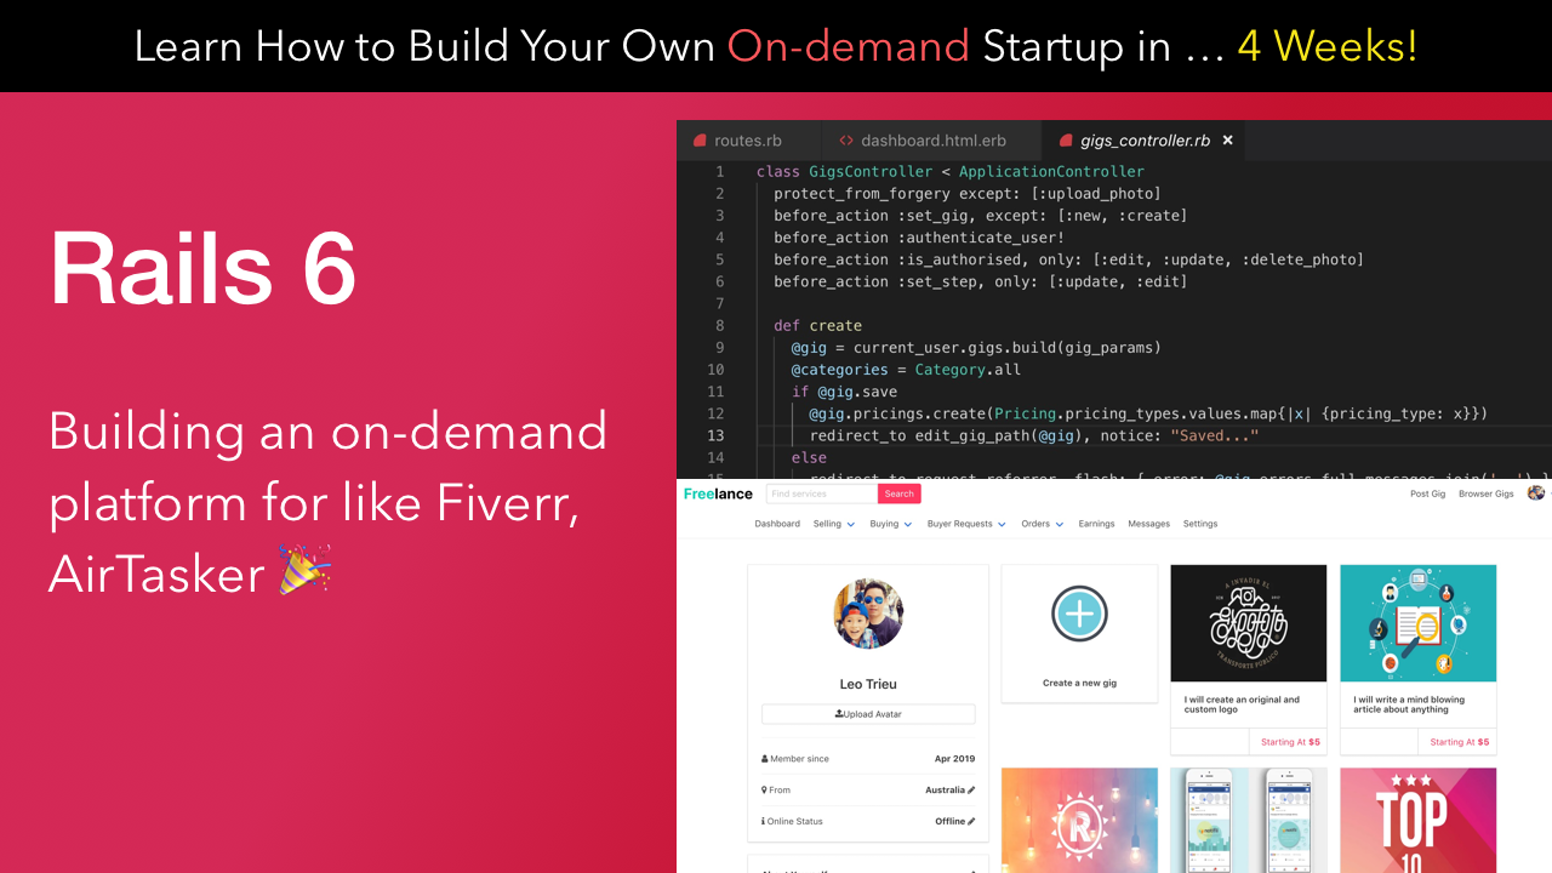 Learn how to build your on-demand startup with Rails 6 in 4 weeks